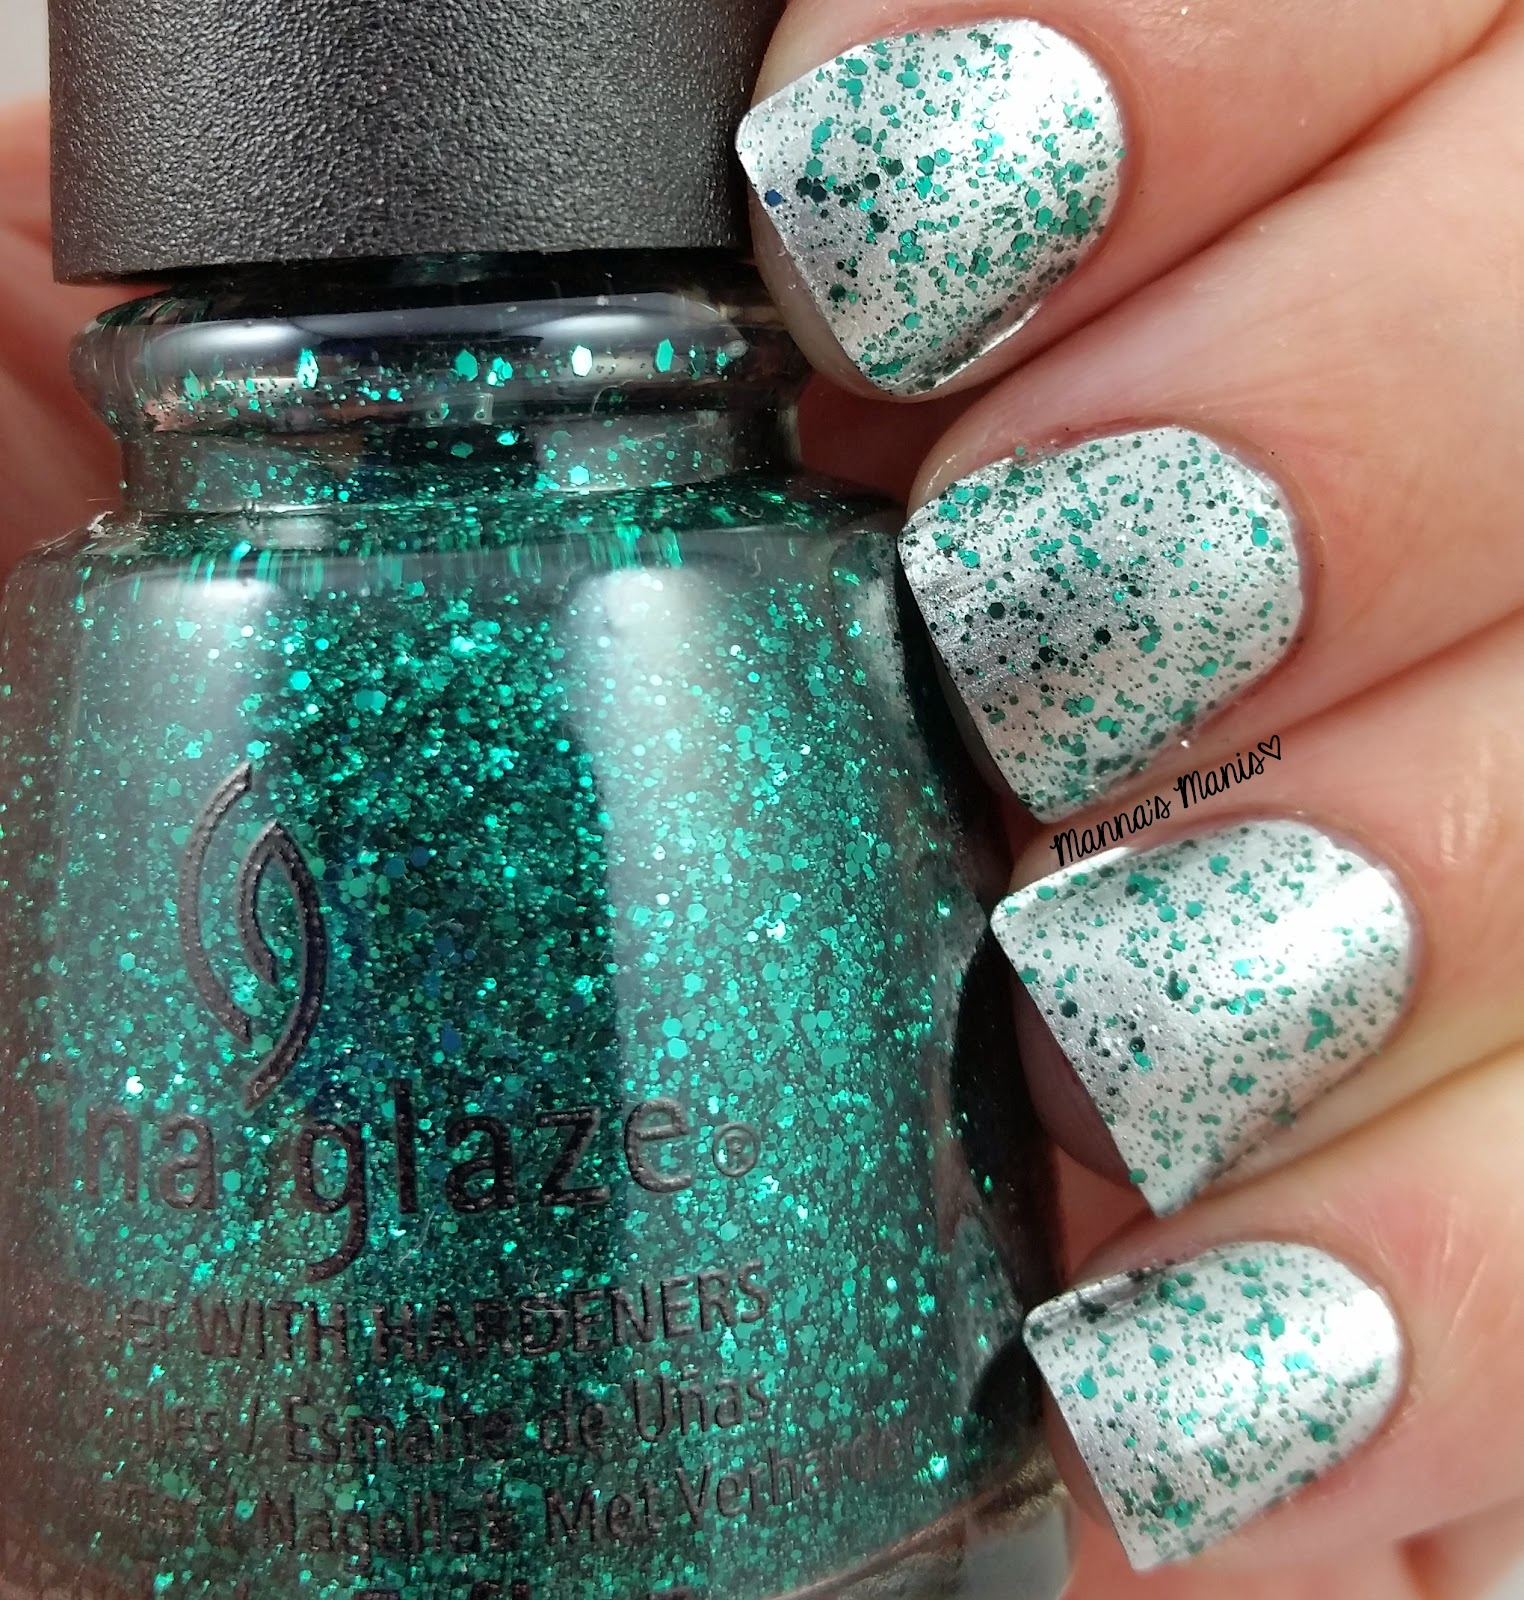 china glaze pineing for glitter, a green glitter nail polish